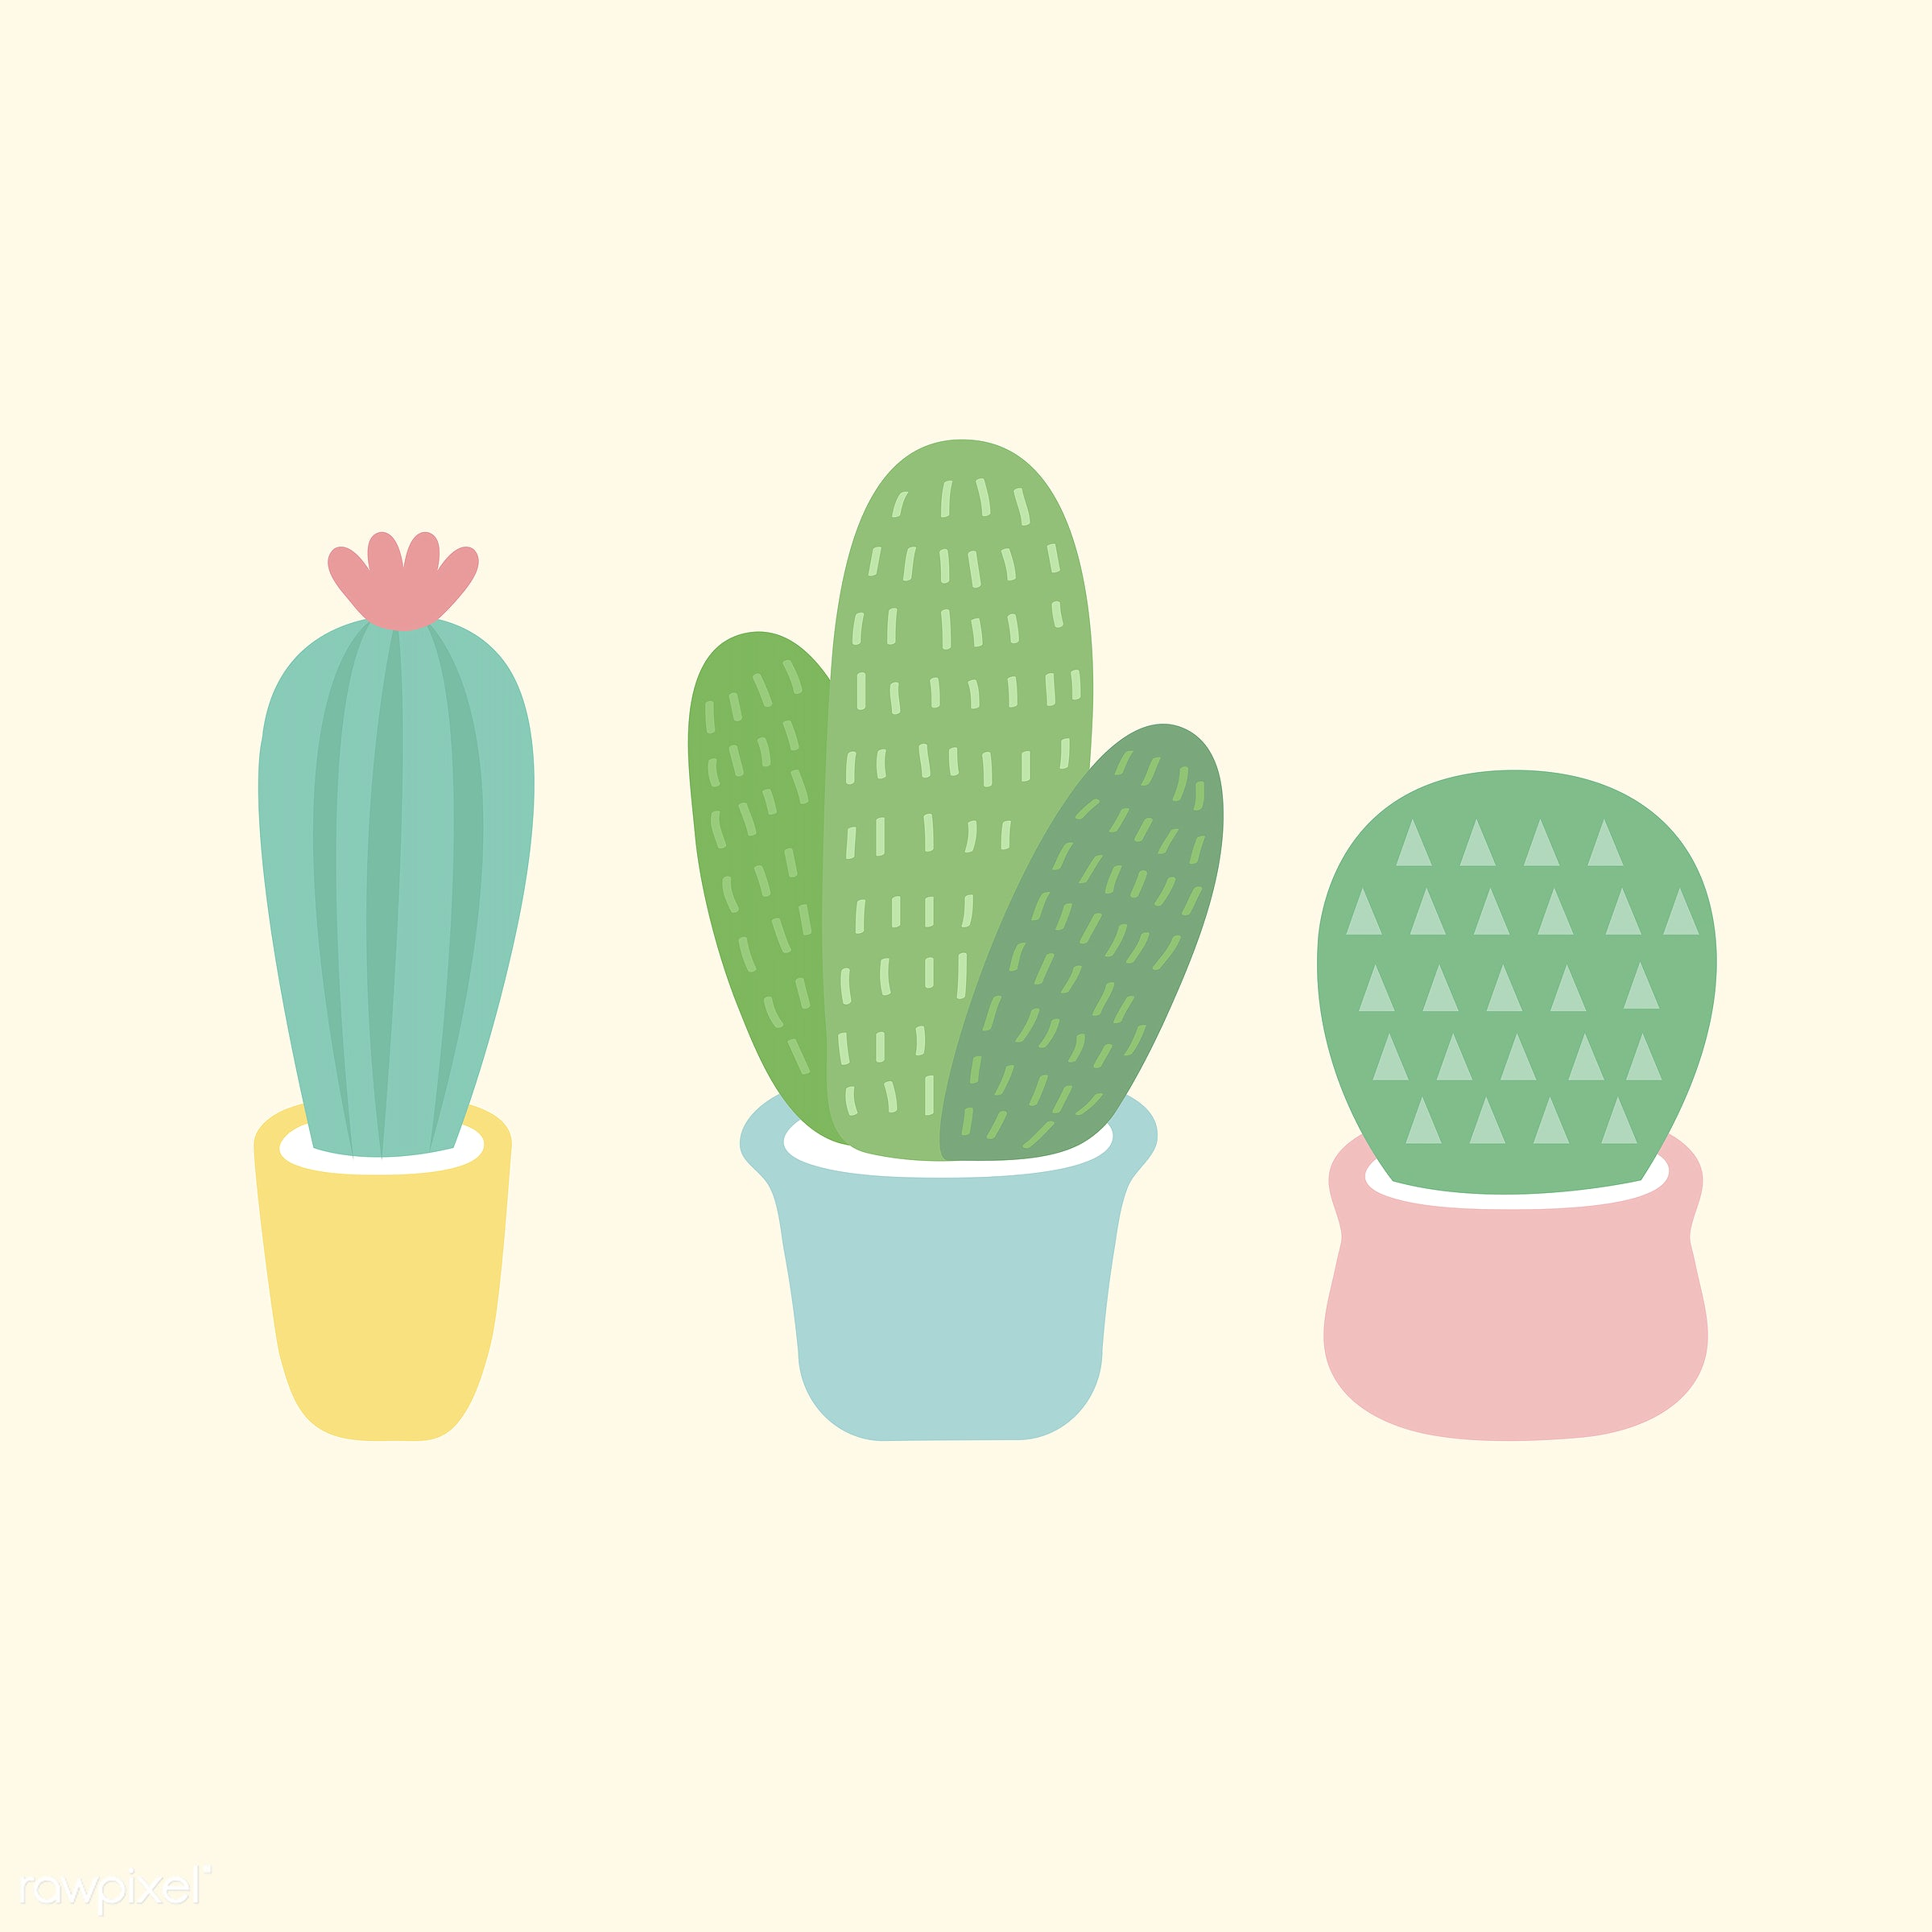 Three small cacti vector - vector, illustration, graphic, cute, sweet, girly, pastel, cactus, cacti, plant